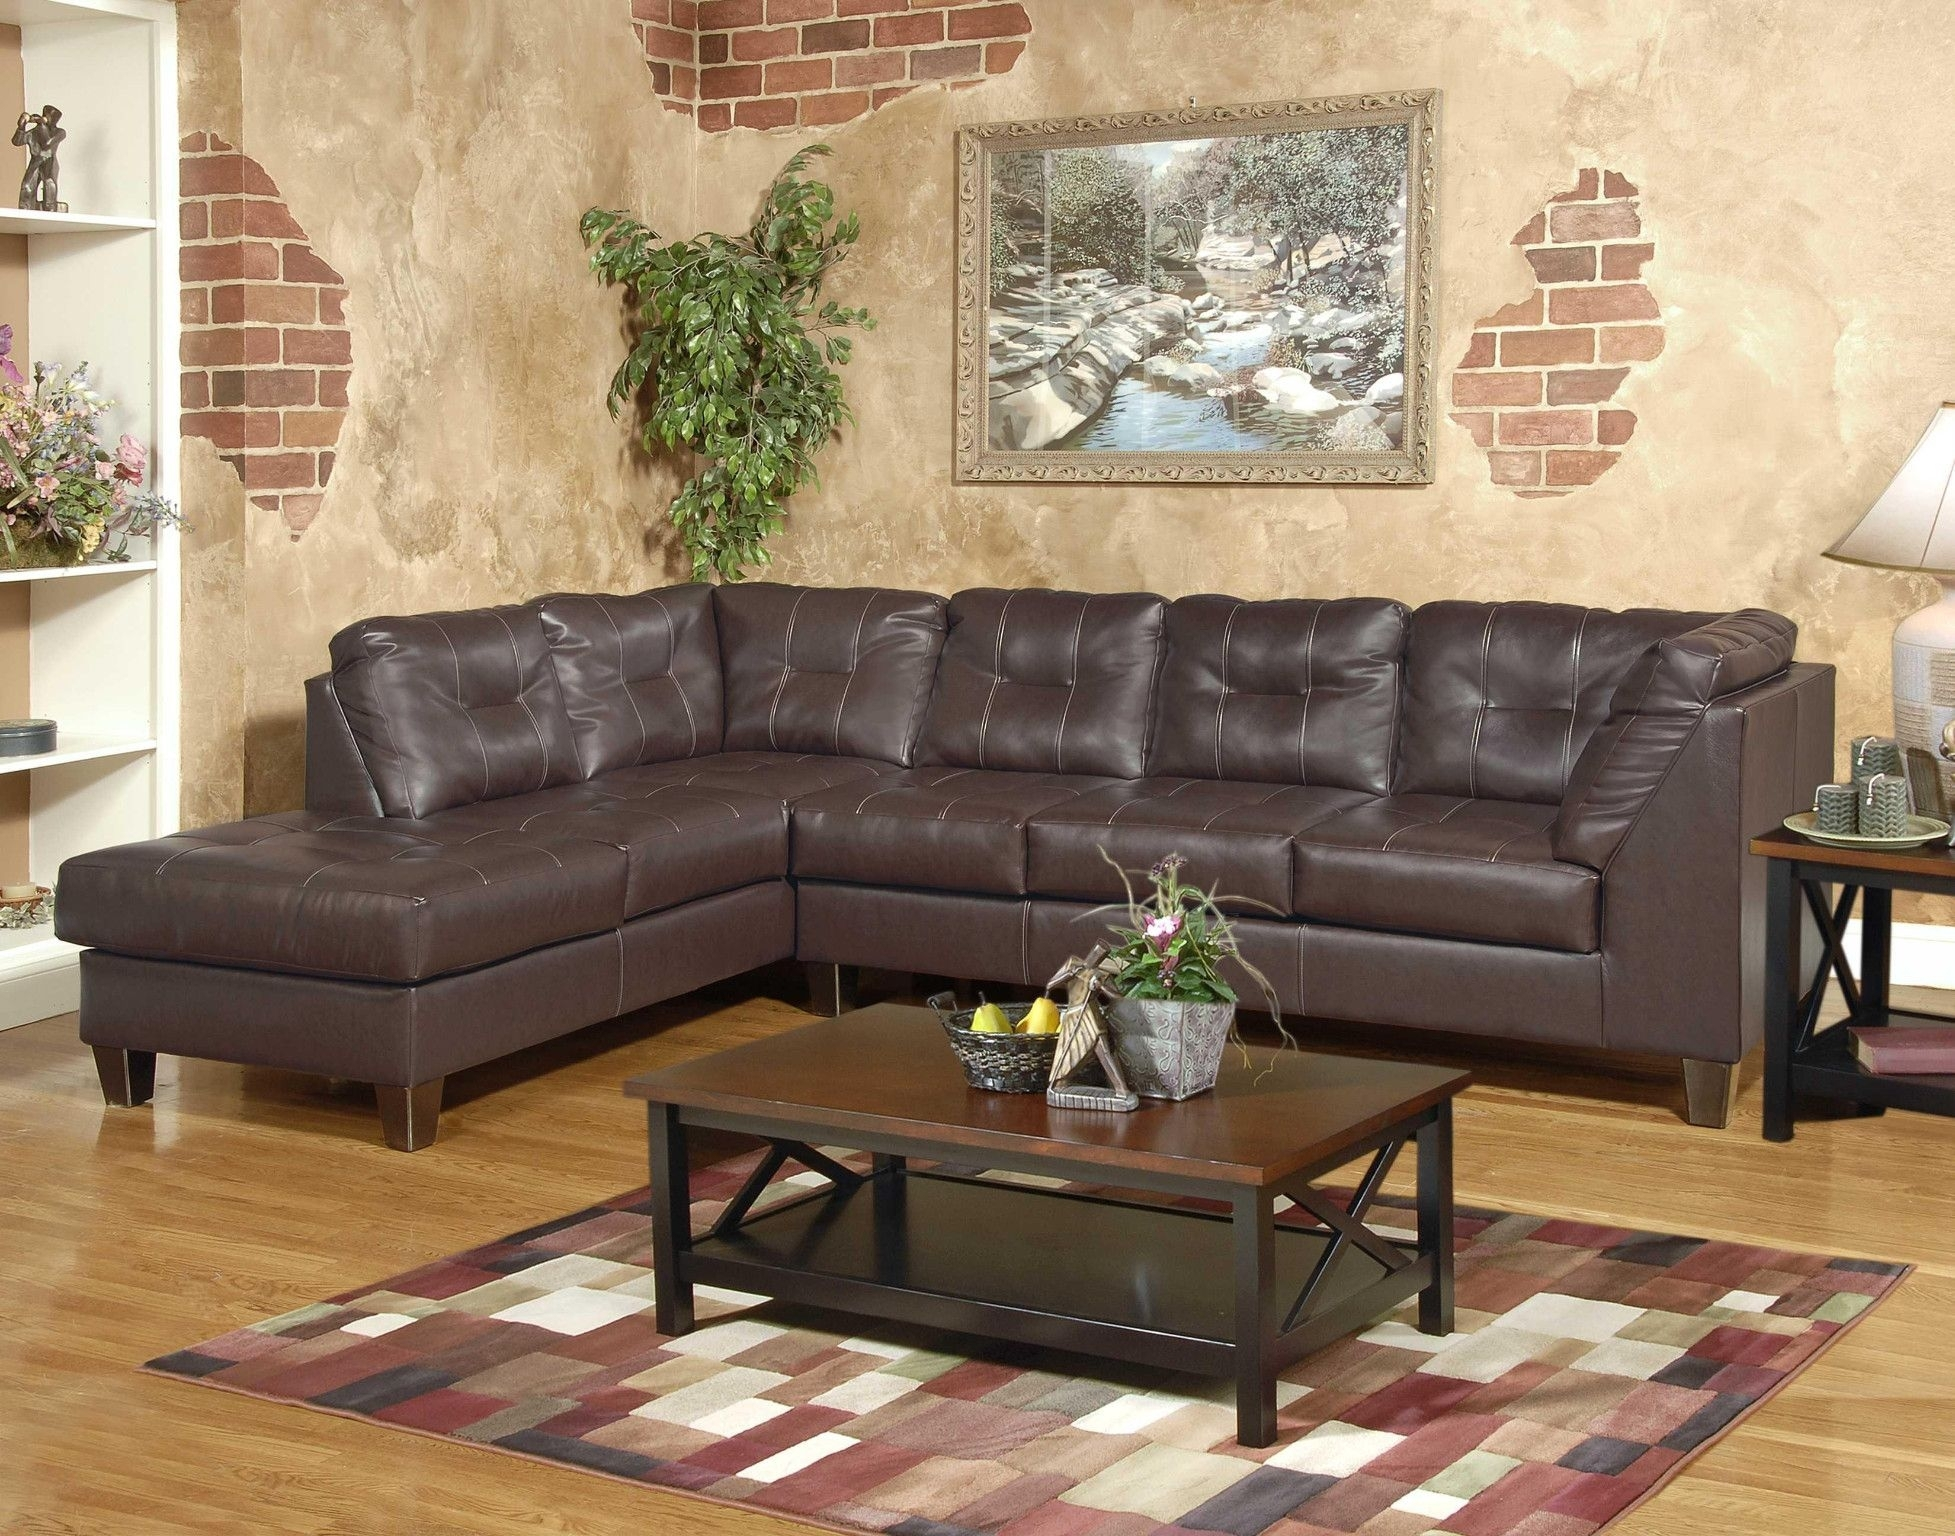 Sectional Sofa W/chaise Shown In San Marino Chocolate Also Available Intended For Sectional Sofas In Greensboro Nc (Image 10 of 10)